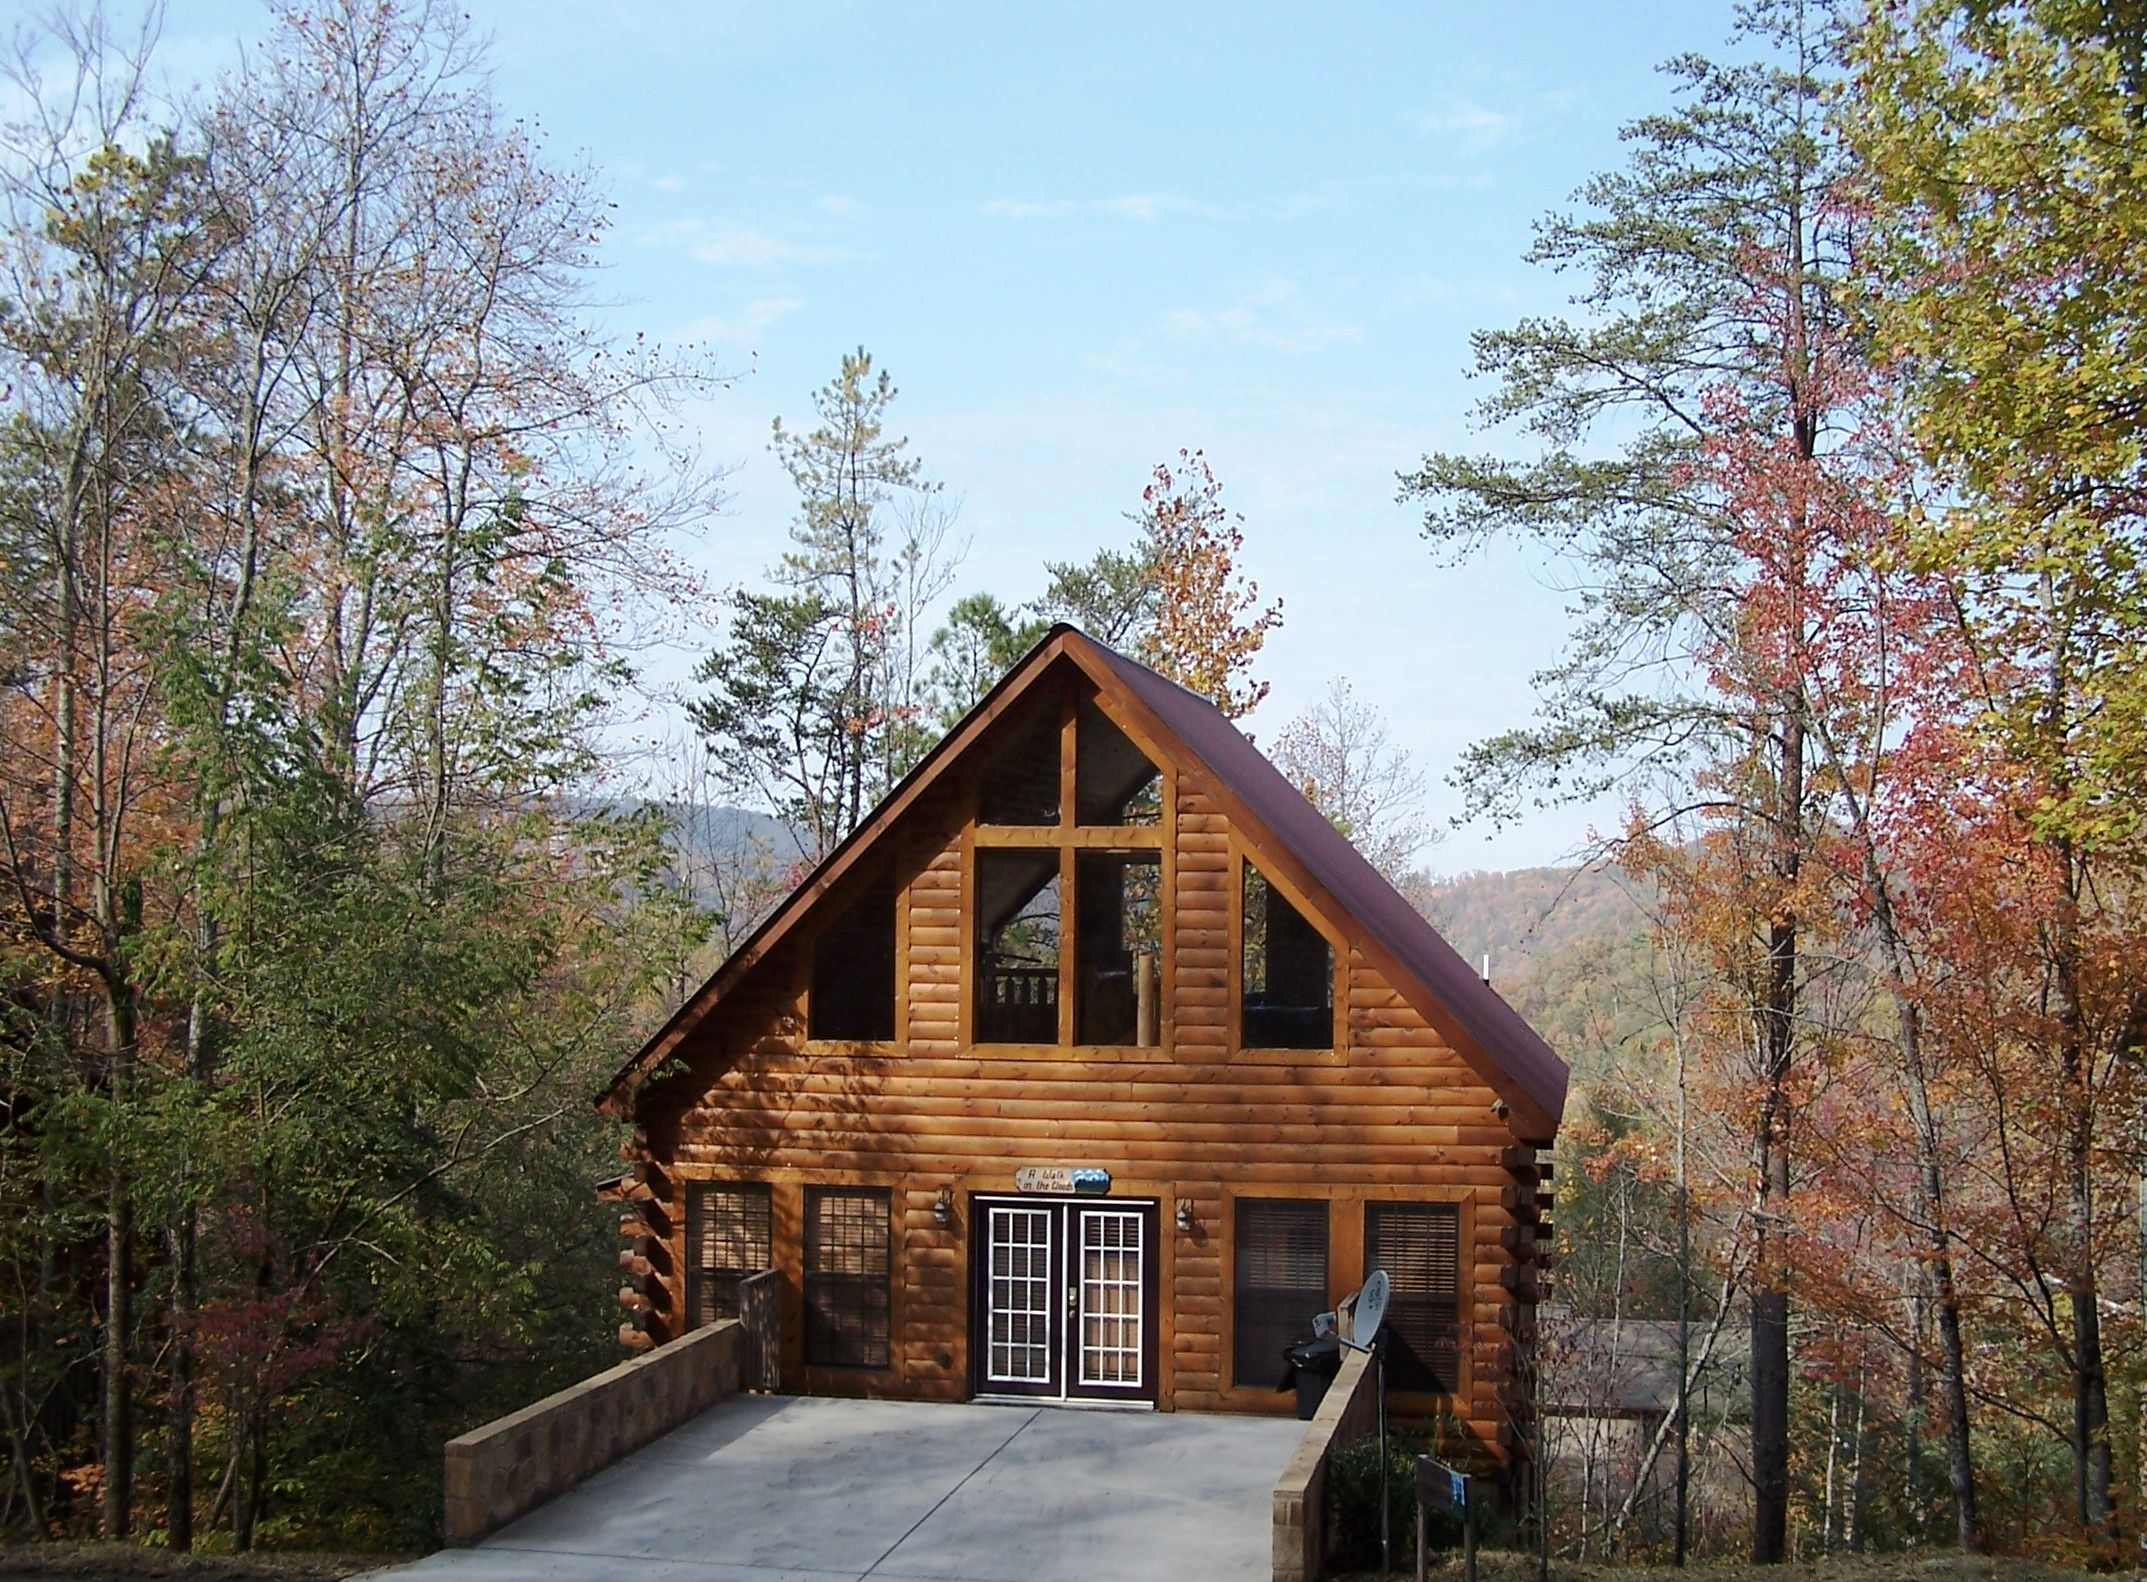 Large gatlinburg cheap cabins romantic hunting gaming for 1 bedroom pet friendly cabins in gatlinburg tn